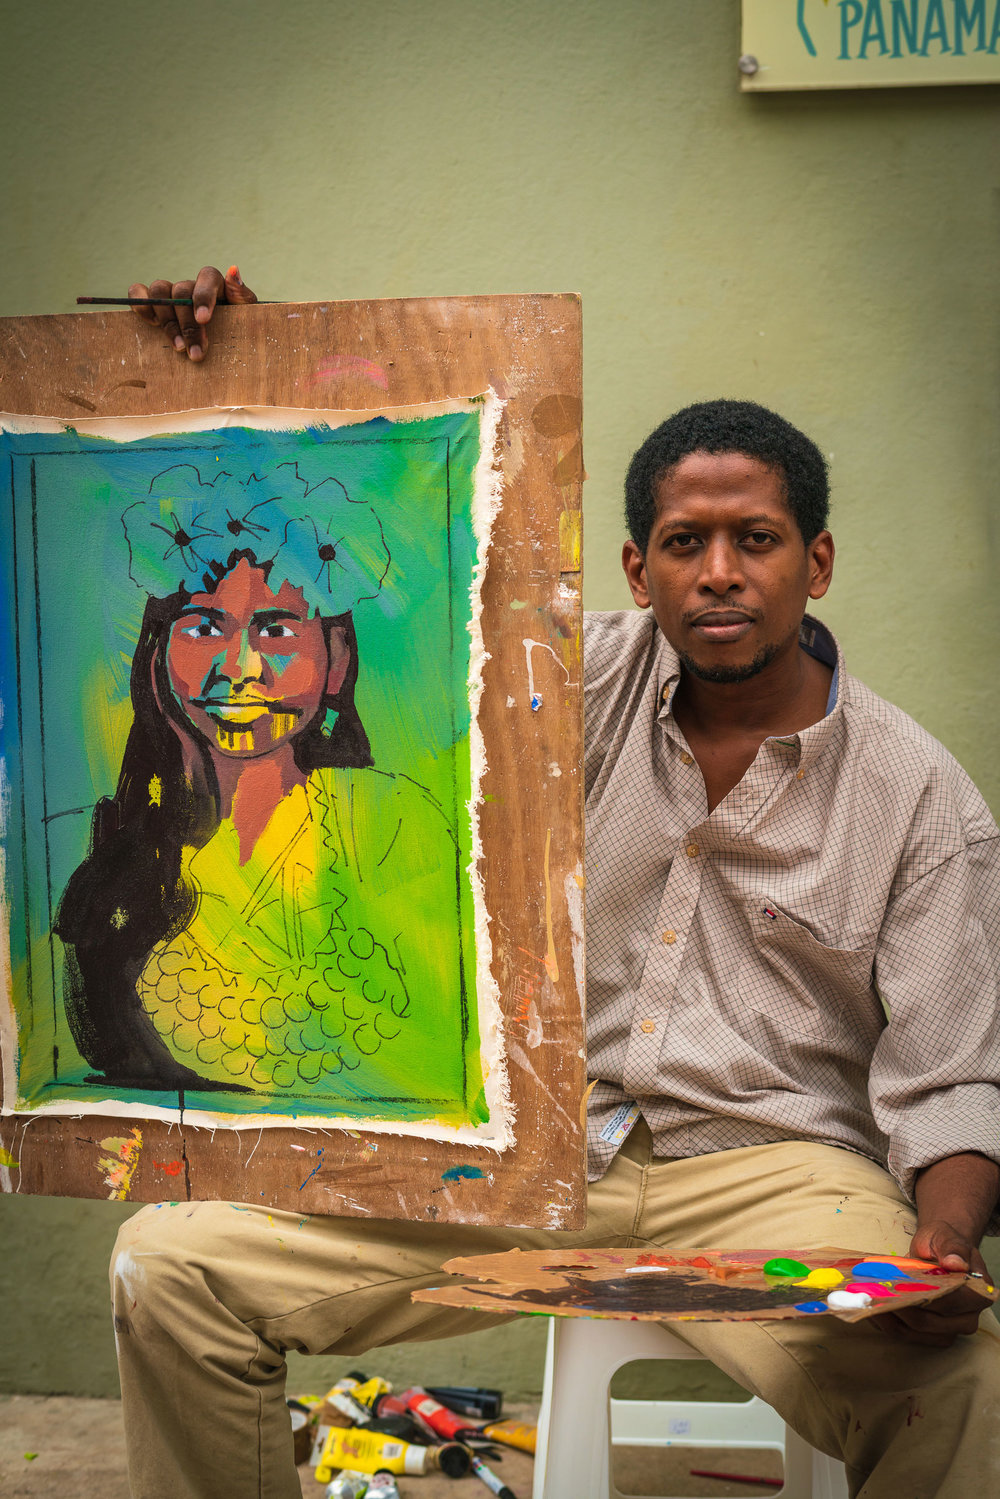 A Cuban artist and his painting, in progress, of a woman from the Embera indigenous community of Panama.